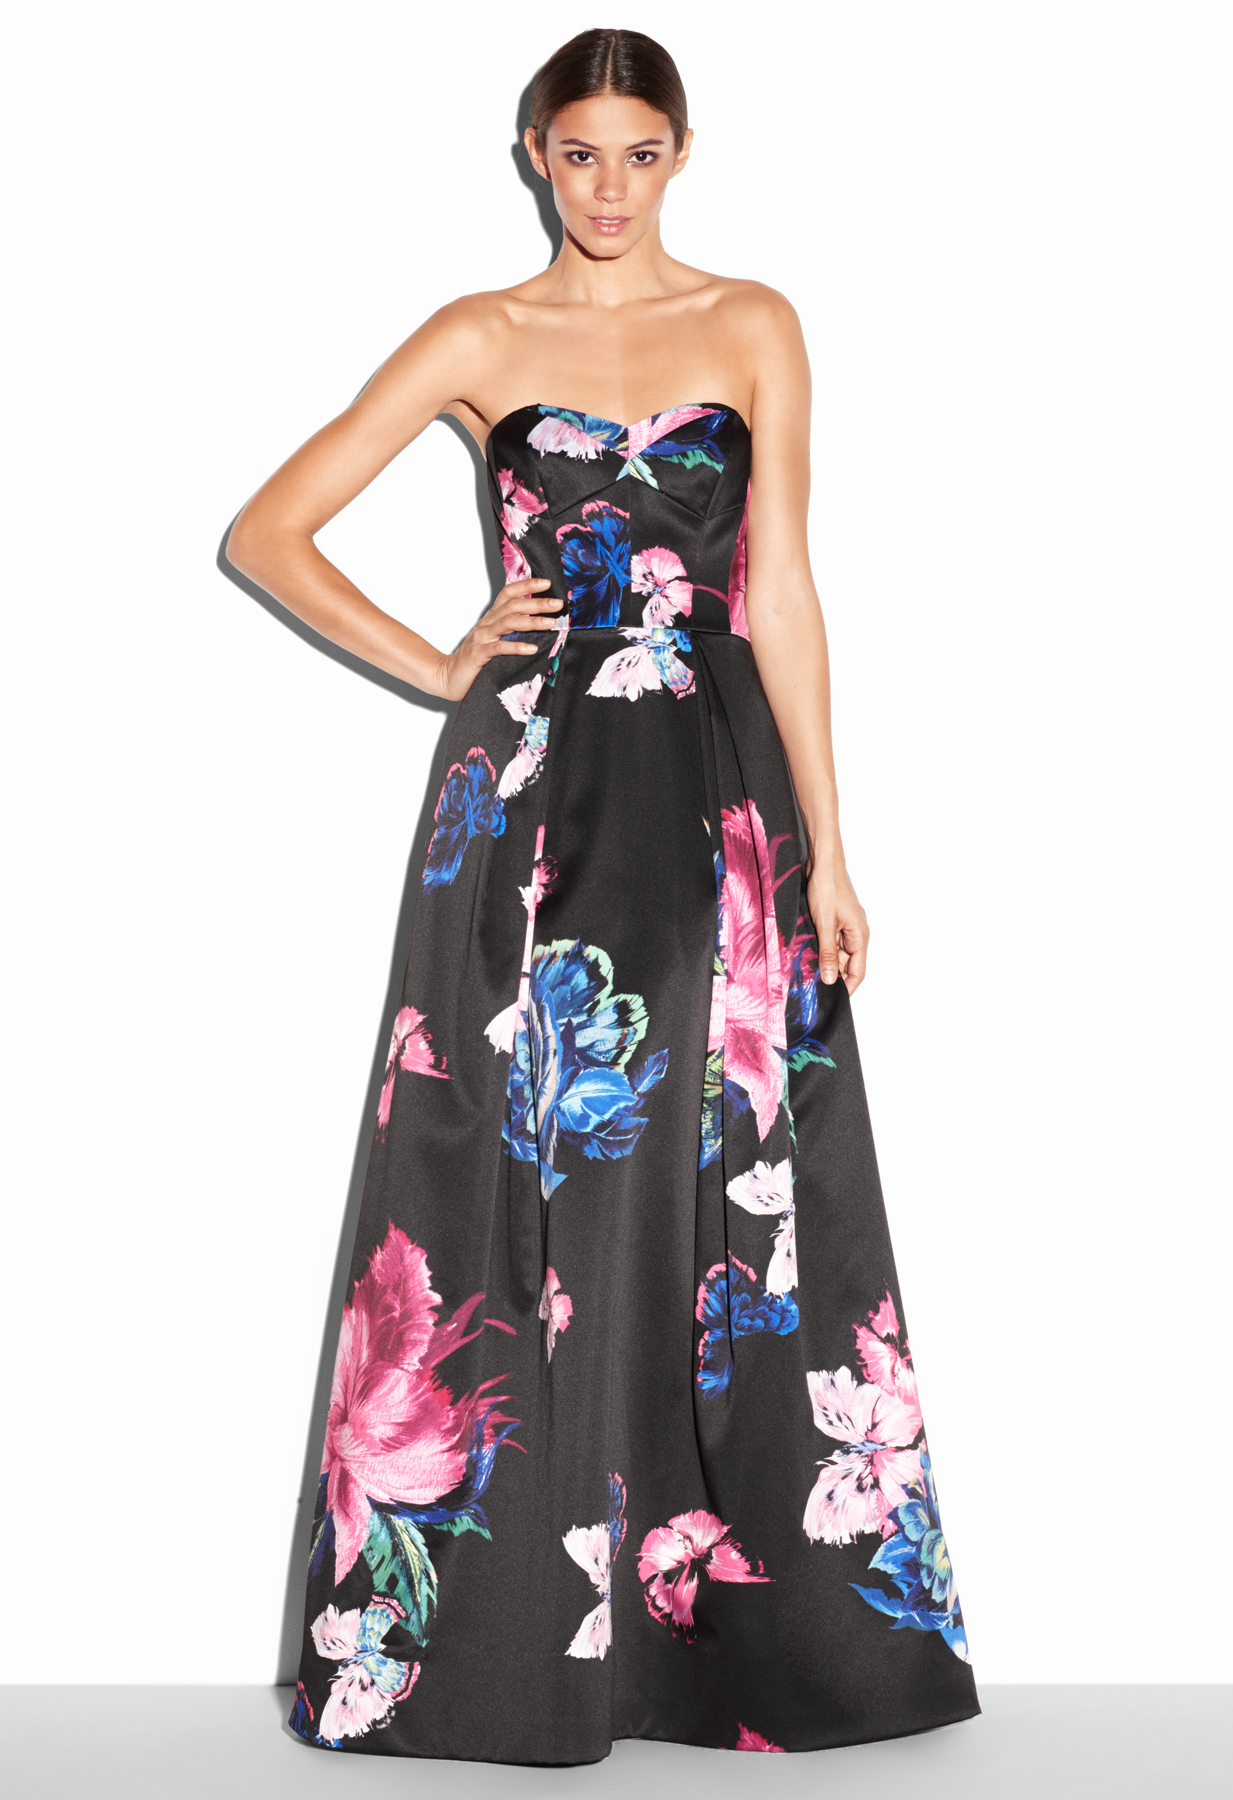 Lyst - Milly Butterfly Print Ava Strapless Gown